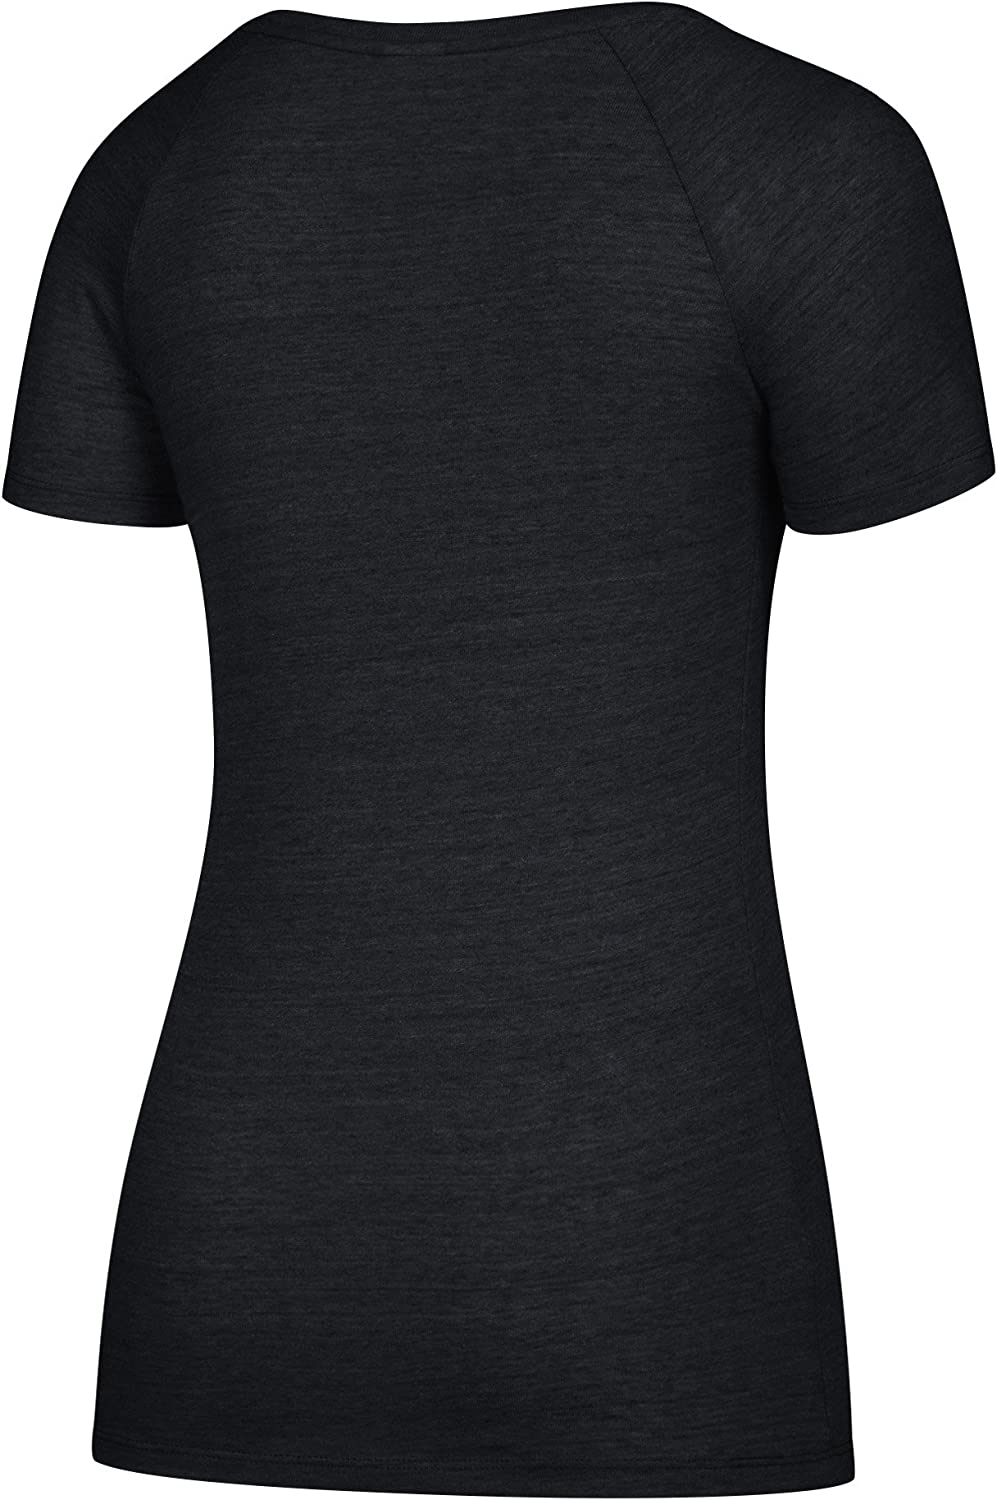 Reebok NHL Finals Stanley Cup Simple Arch Triblend V-Neck Tee